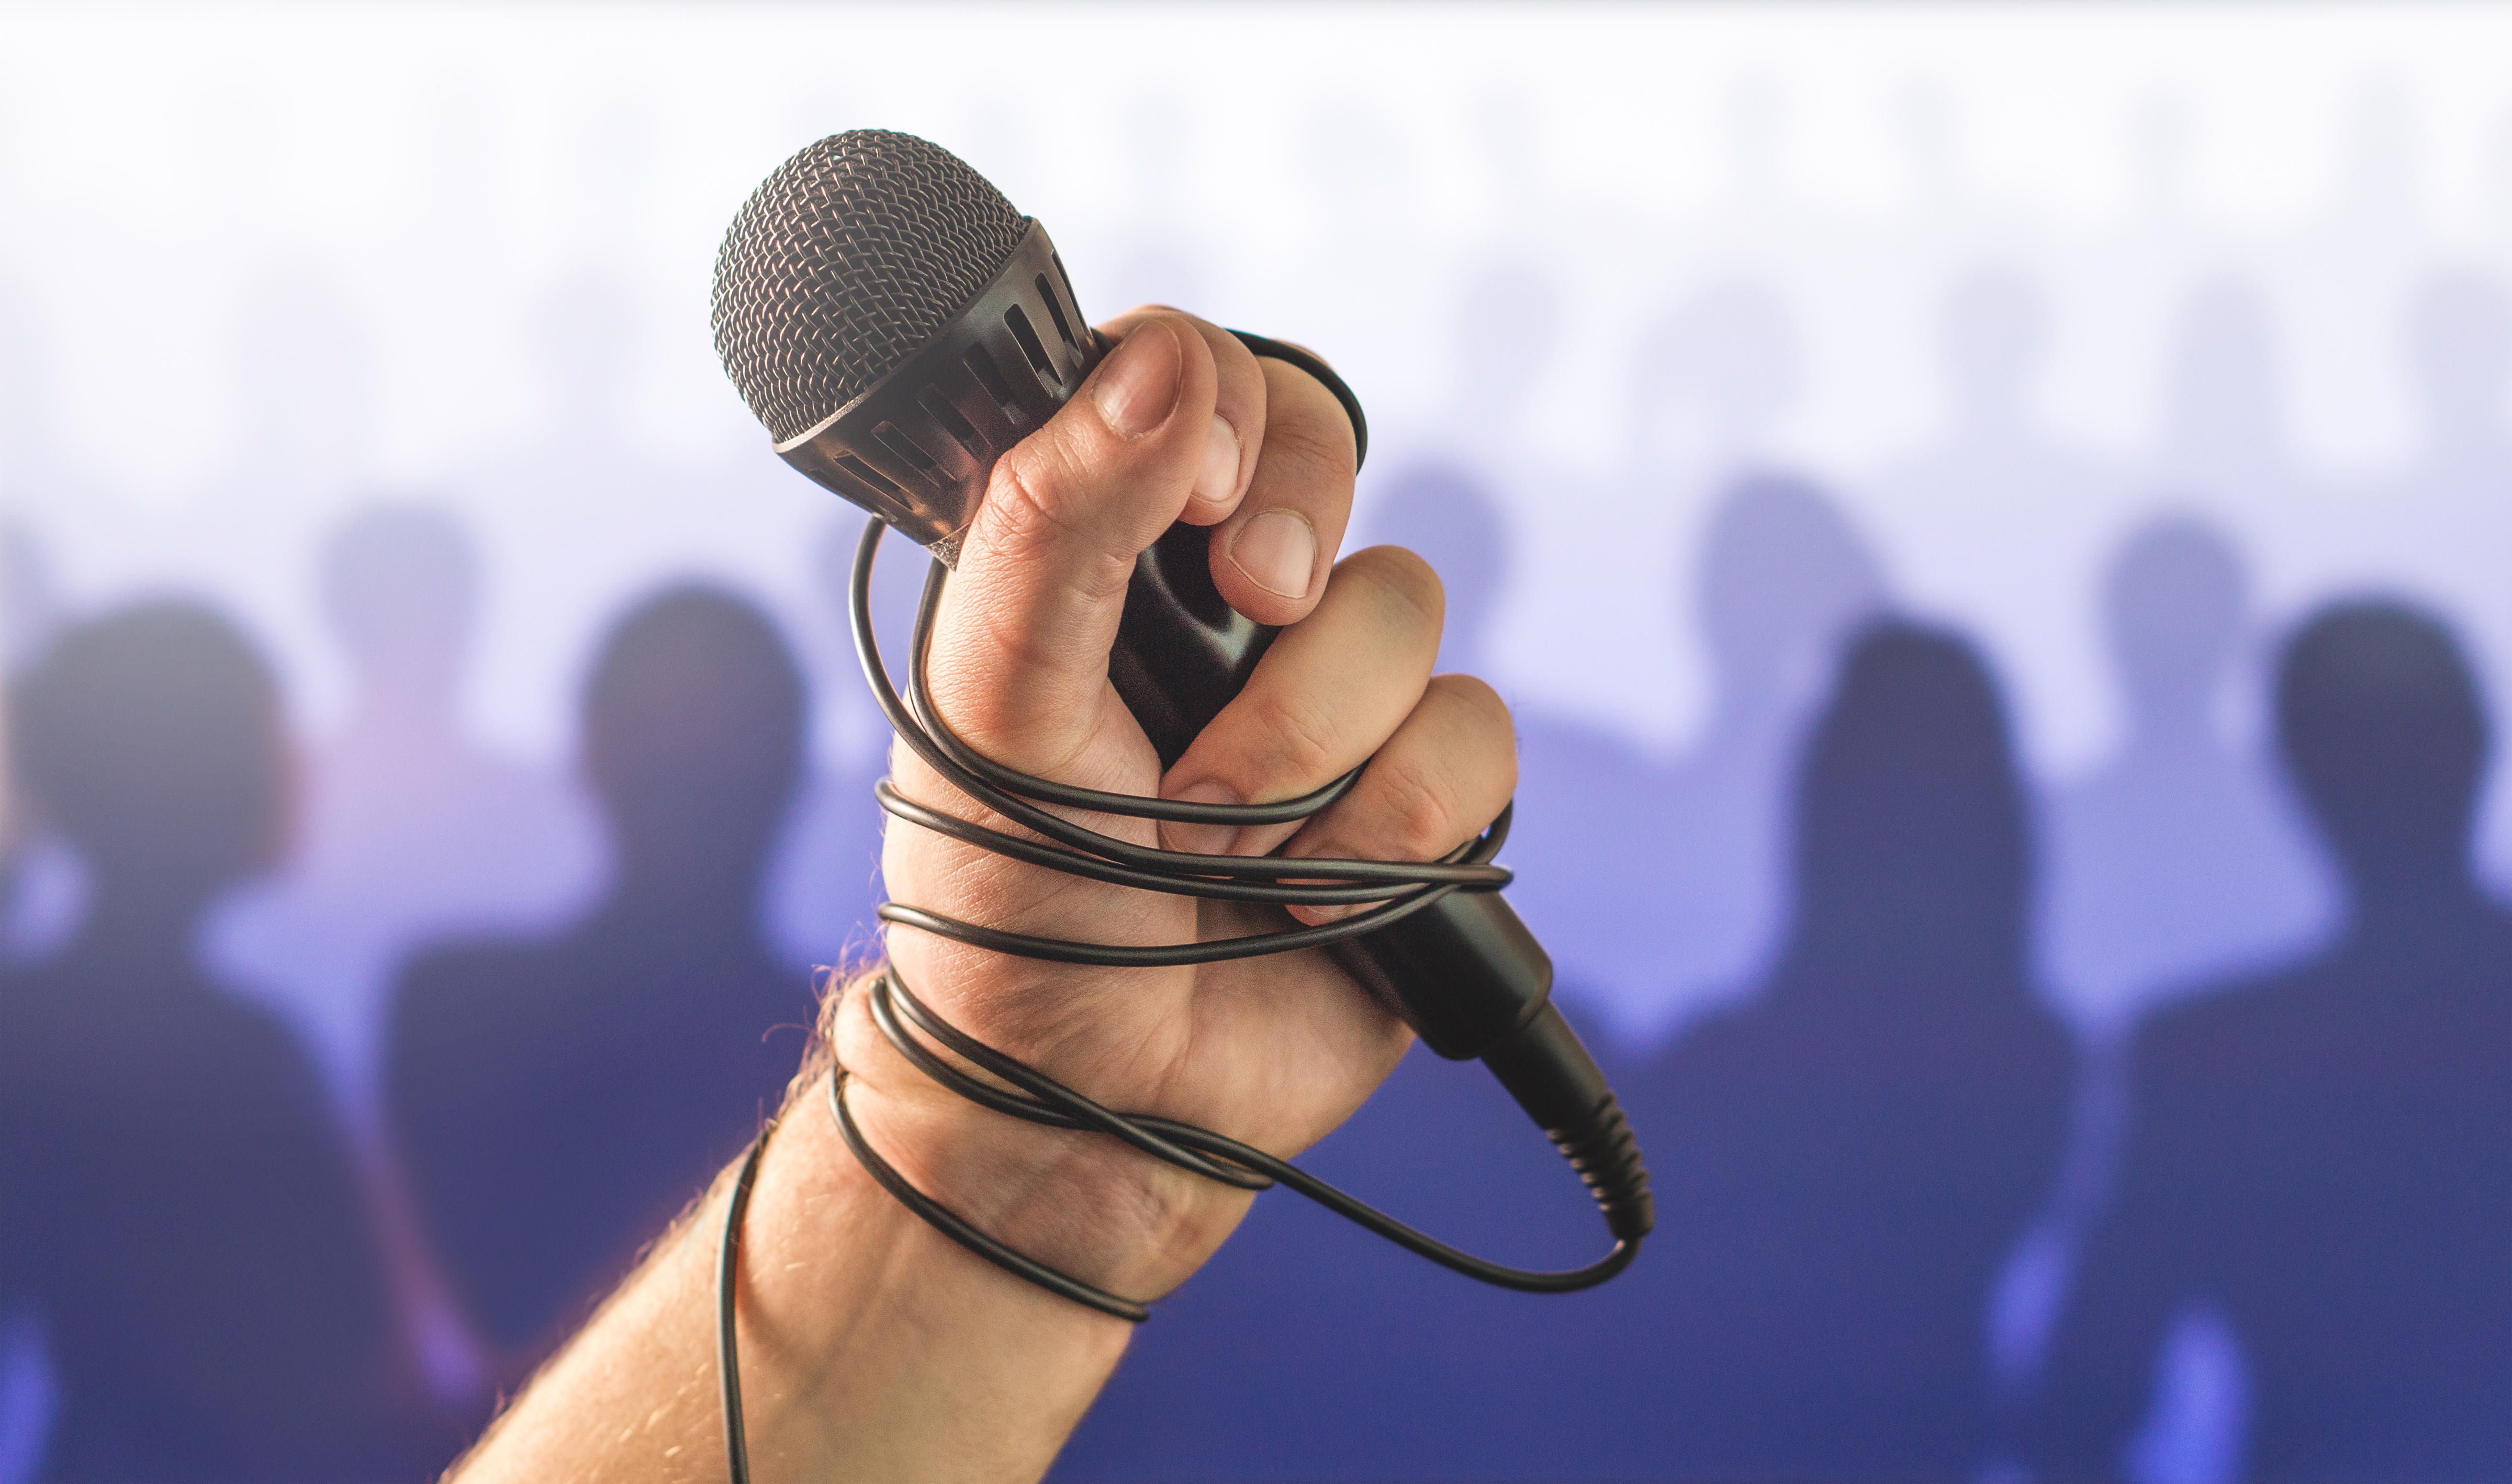 Stage fright in public speaking or bad karaoke singing live in front of crowd of people. Problem with speech or failed talent show performance.